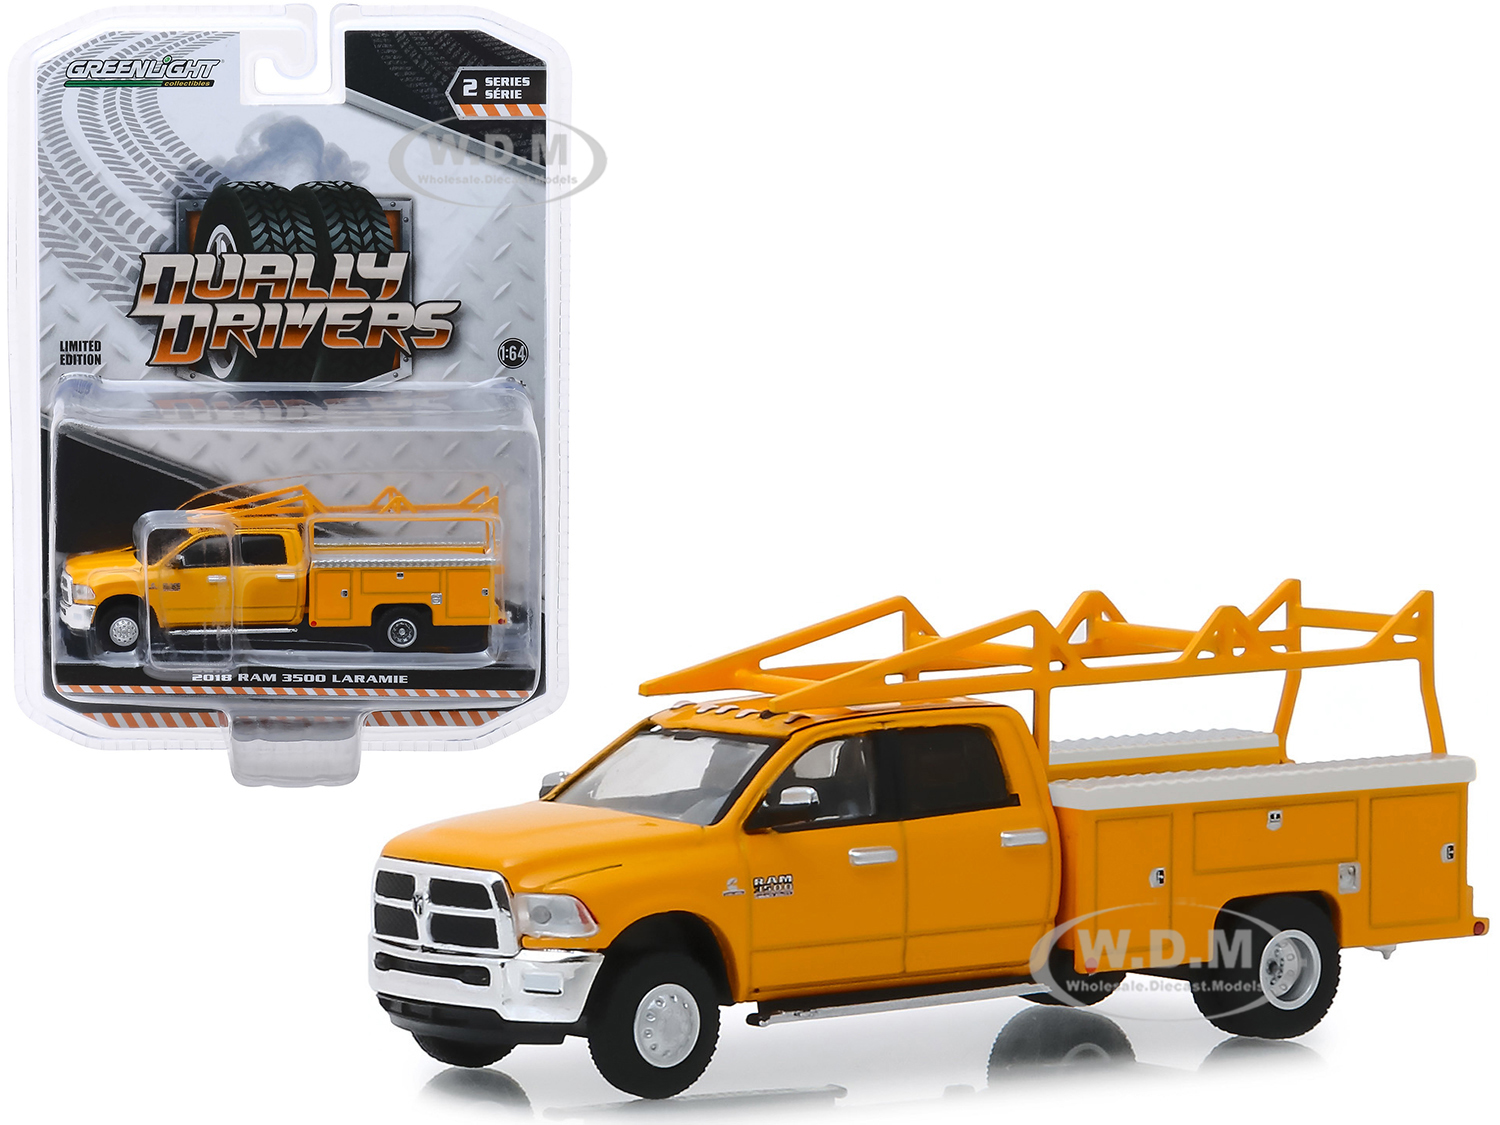 2018 Dodge Ram 3500 Laramie Service Bed Truck with Ladder Rack Yellow Dually Drivers Series 2 1/64 Diecast Model Car by Greenlight